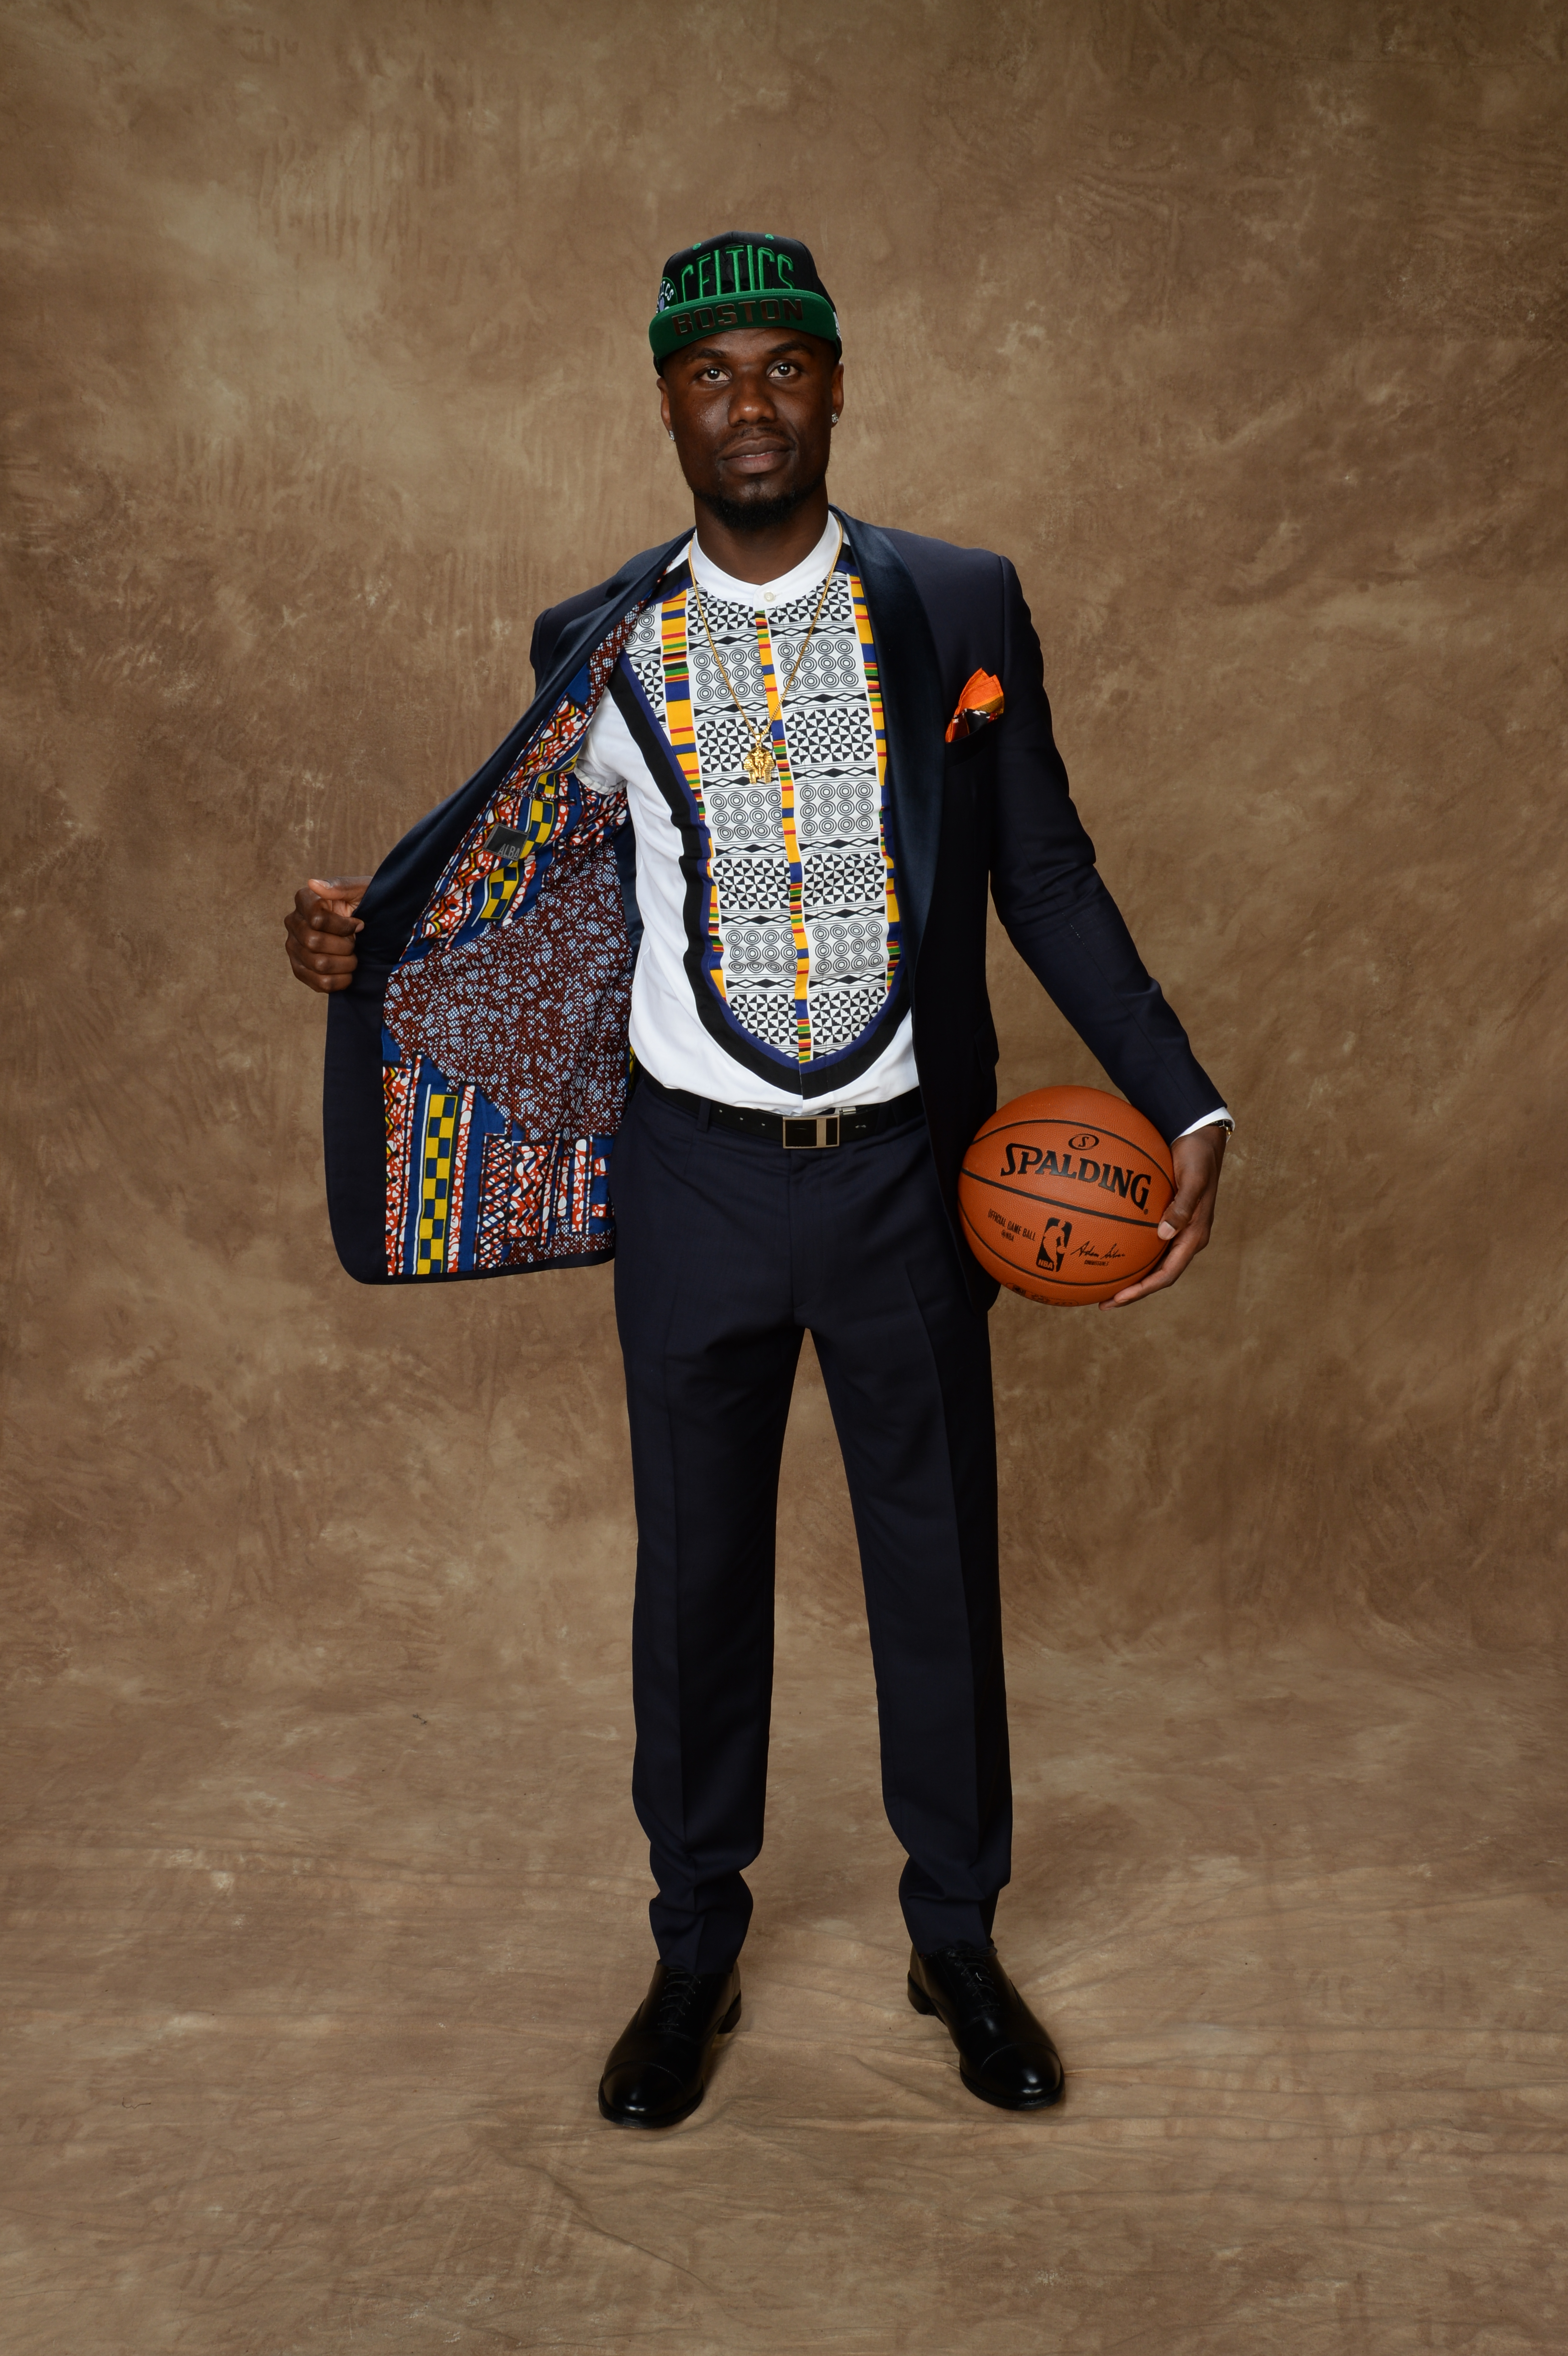 Ben Bentil's dapper suit and shirt came from Serge Ibaka's clothing line and paid homage to his homeland of Ghana.